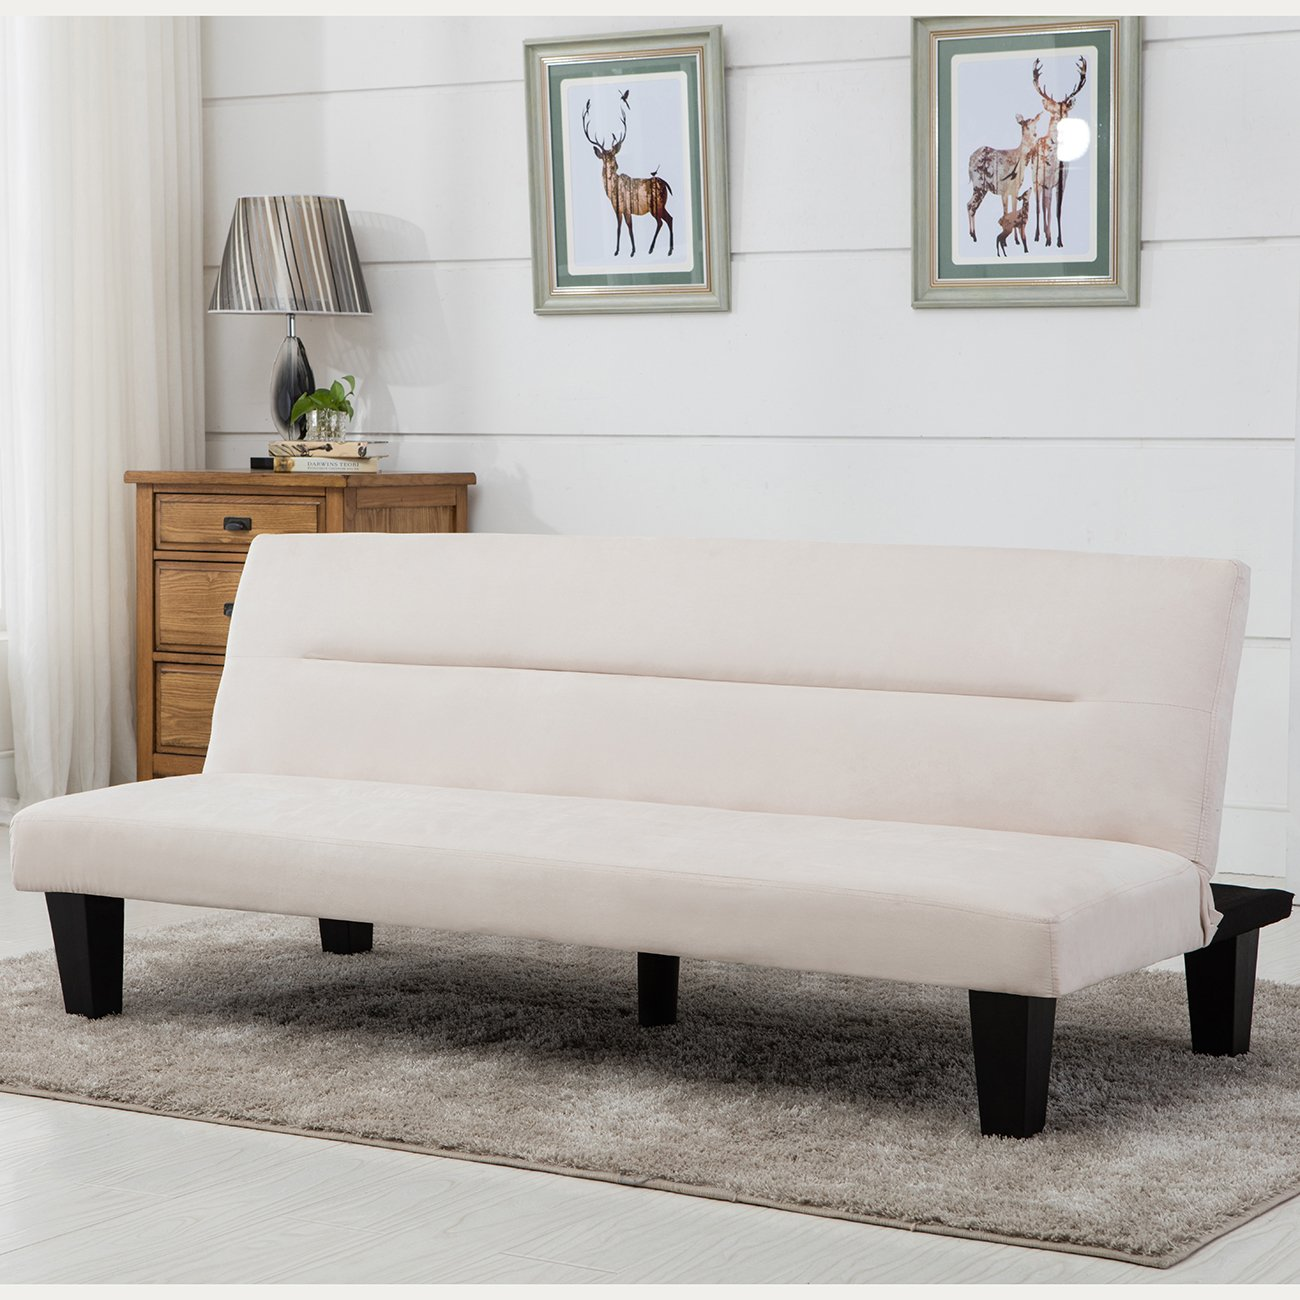 office futon. Amazon.com: Belleze Convertible Futon Bed Sofa Couch Lounger Microfiber - Vanilla: Kitchen \u0026 Dining Office